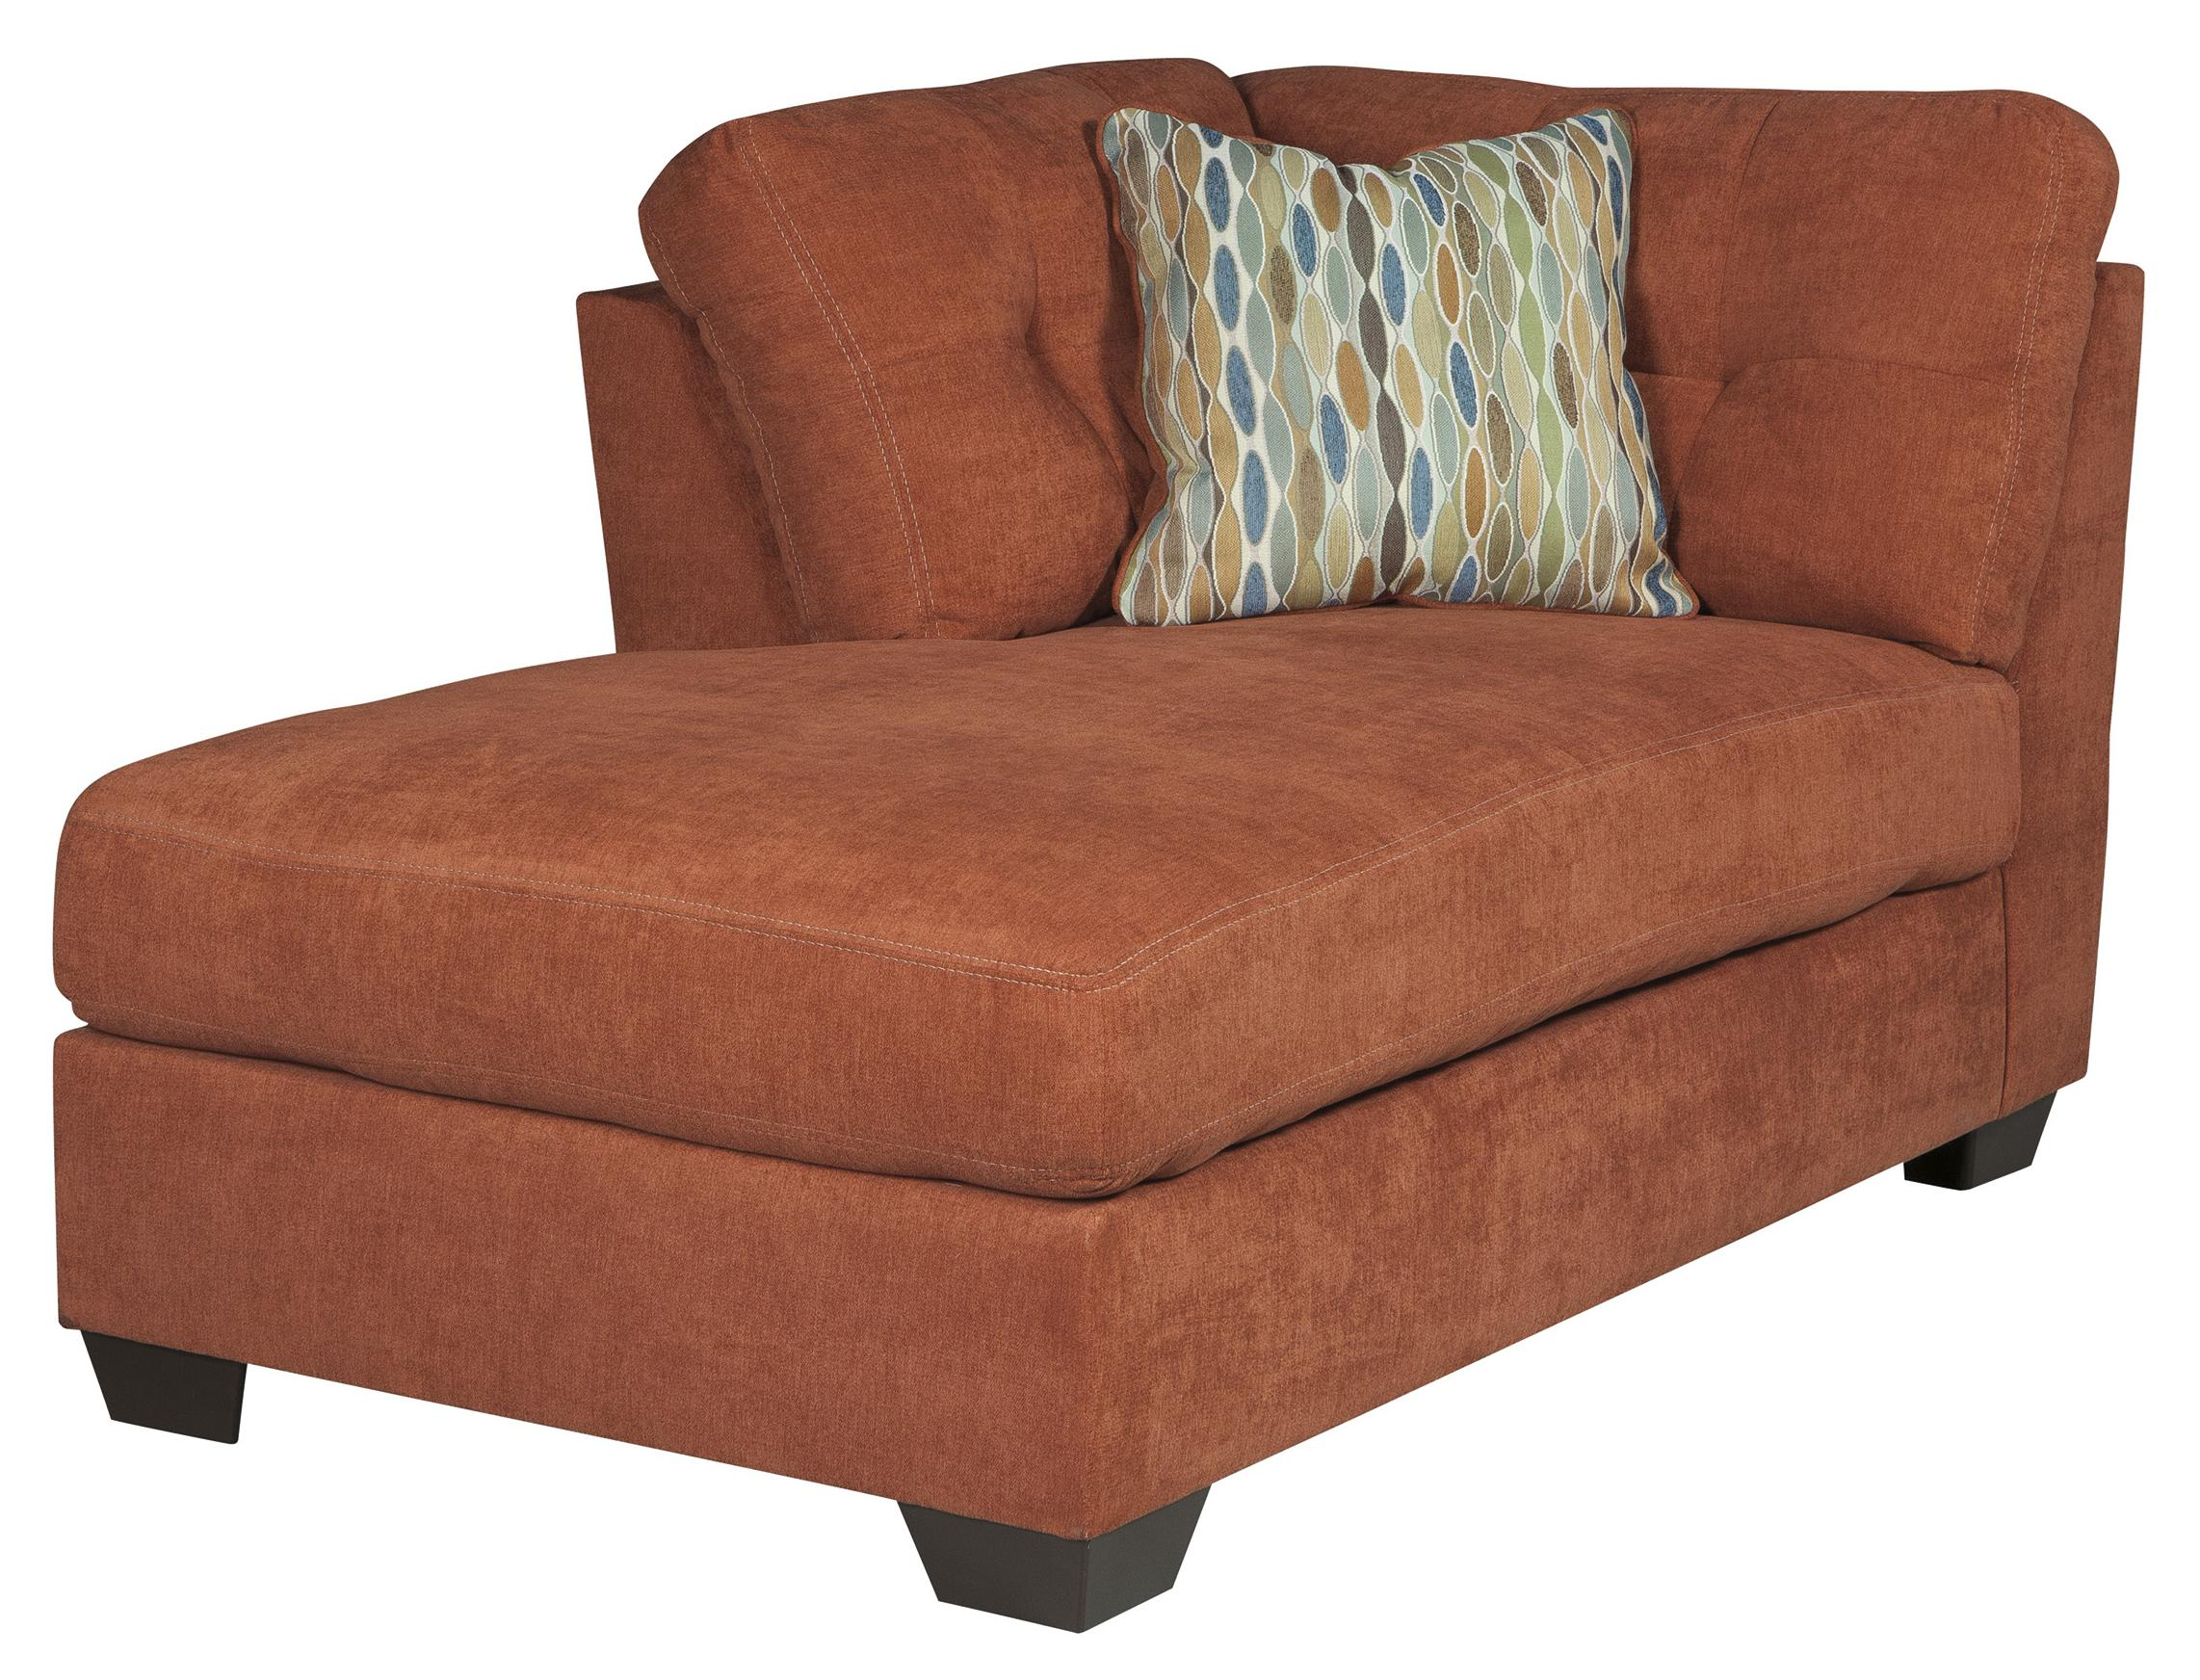 Benchcraft Delta City - Rust LAF Corner Chaise - Item Number: 1970116